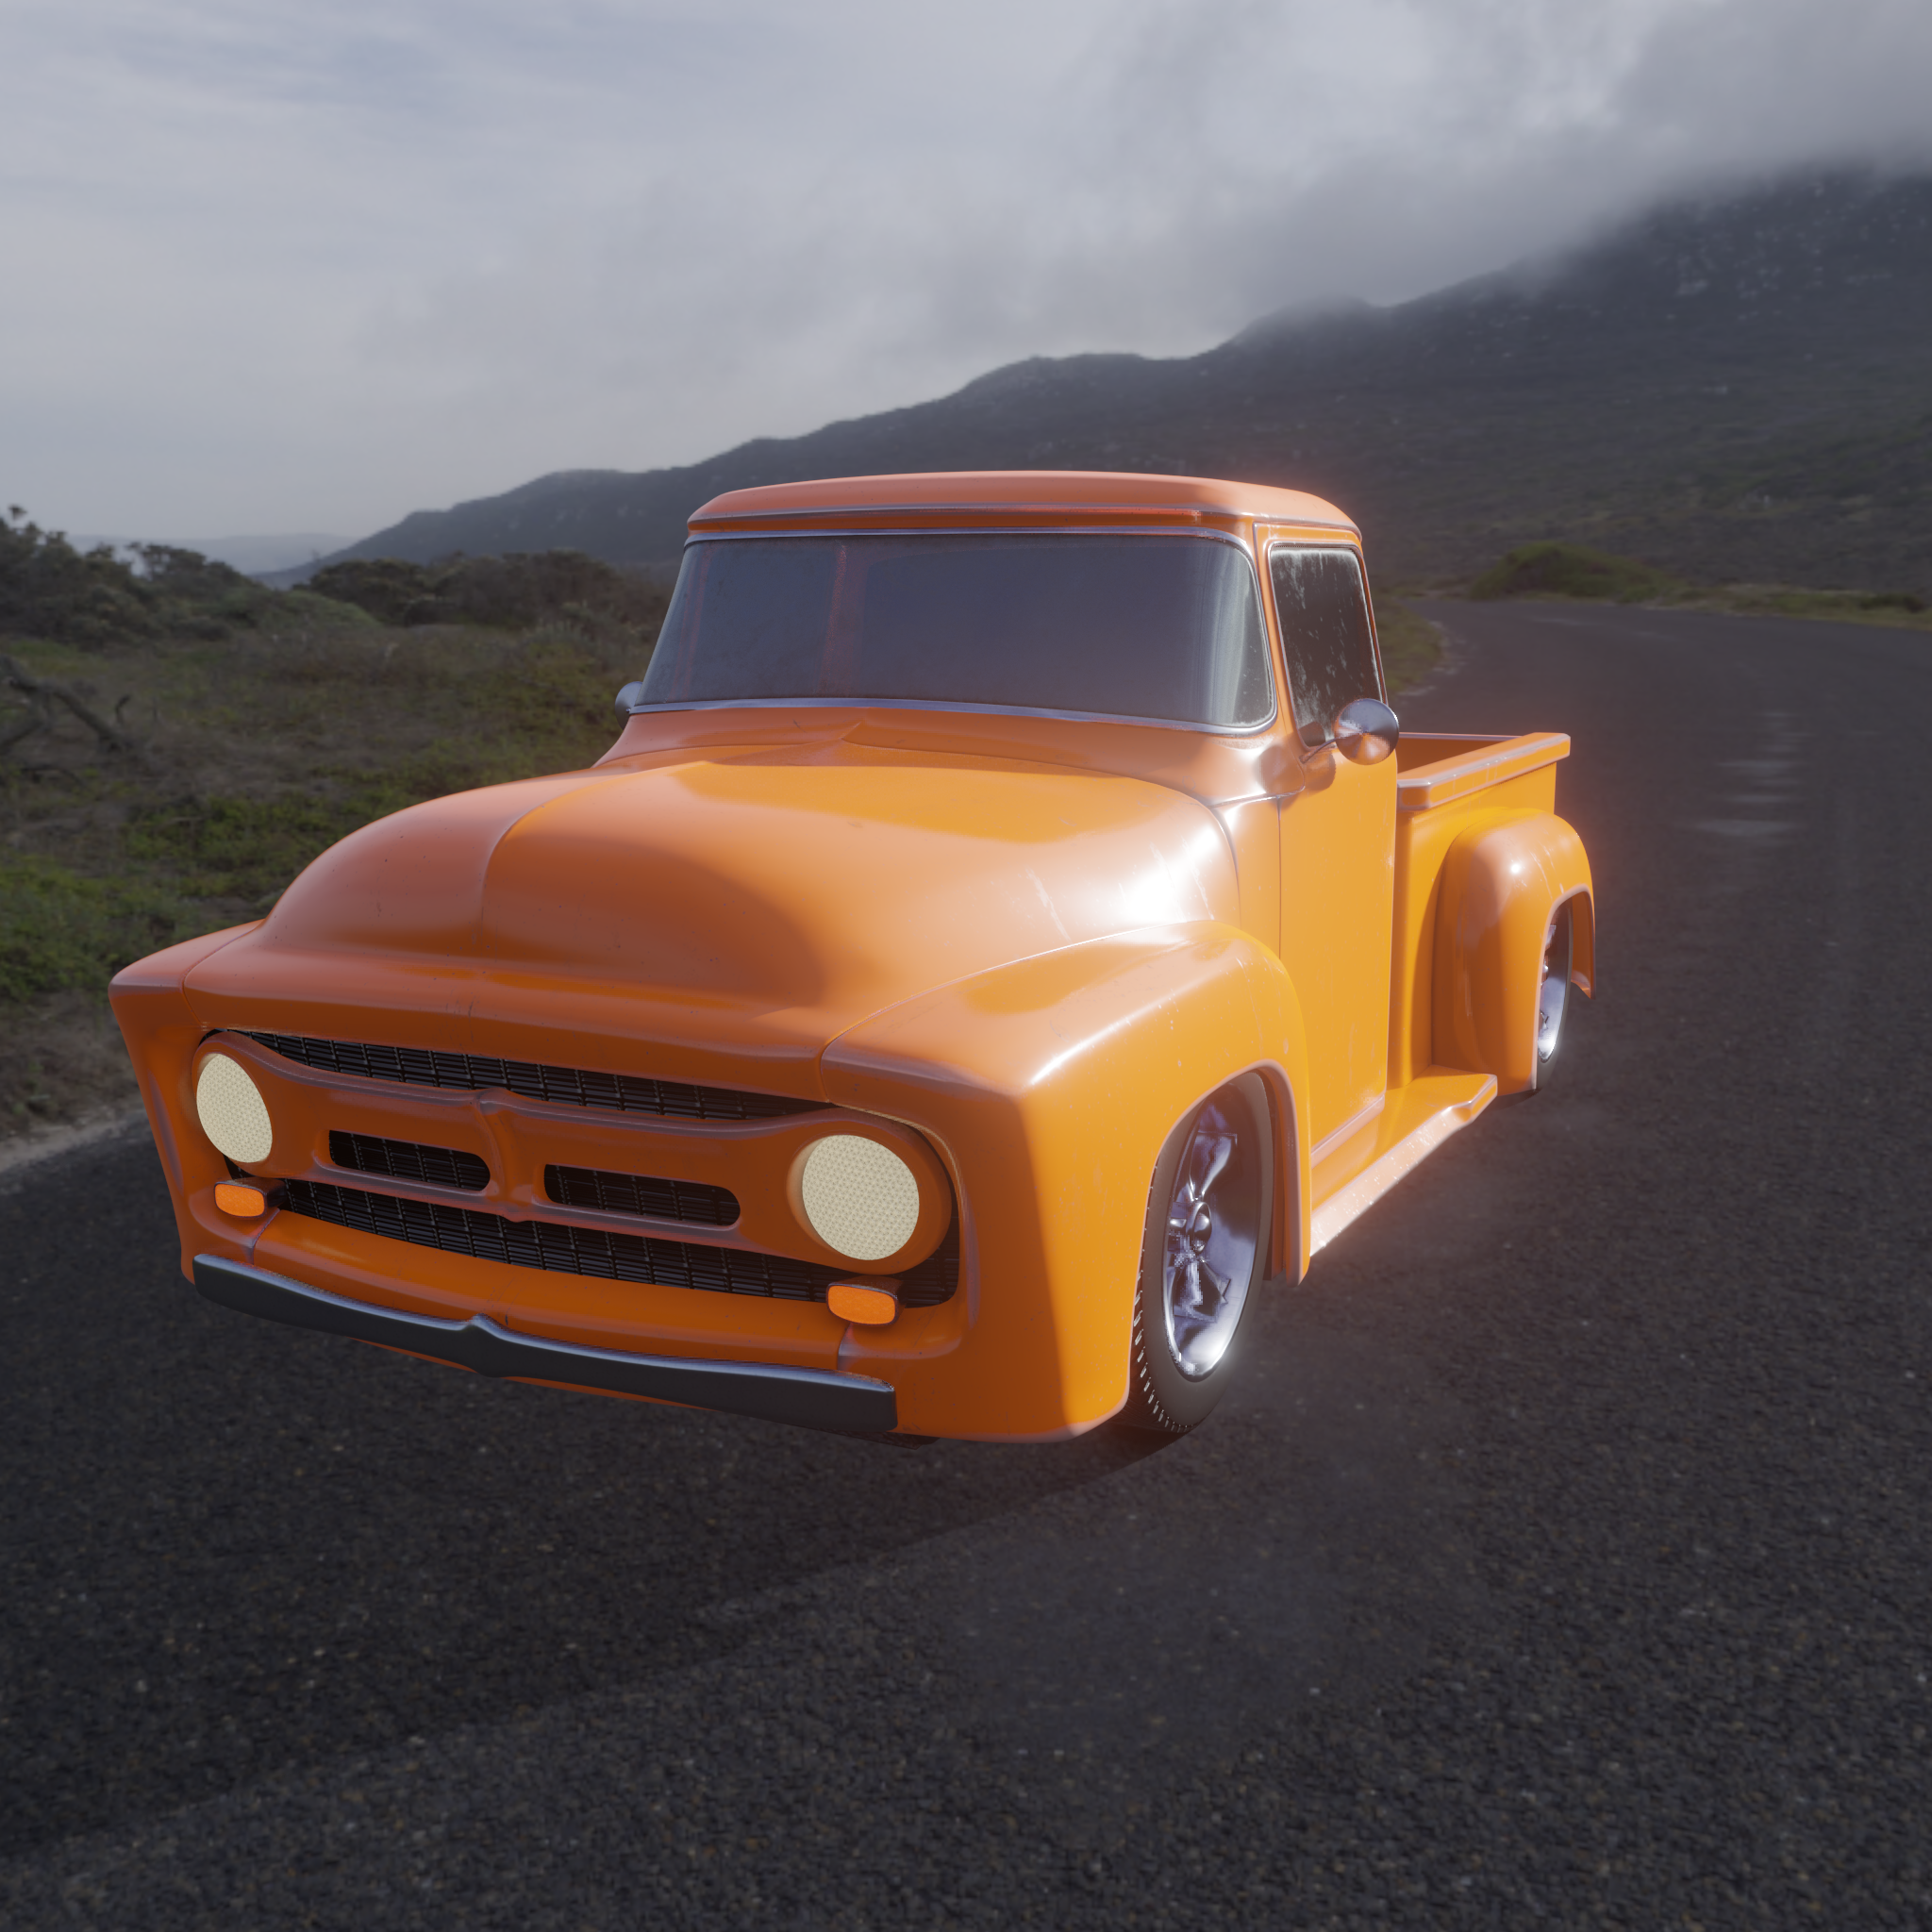 1950's F100 Pickup Truck preview image 1